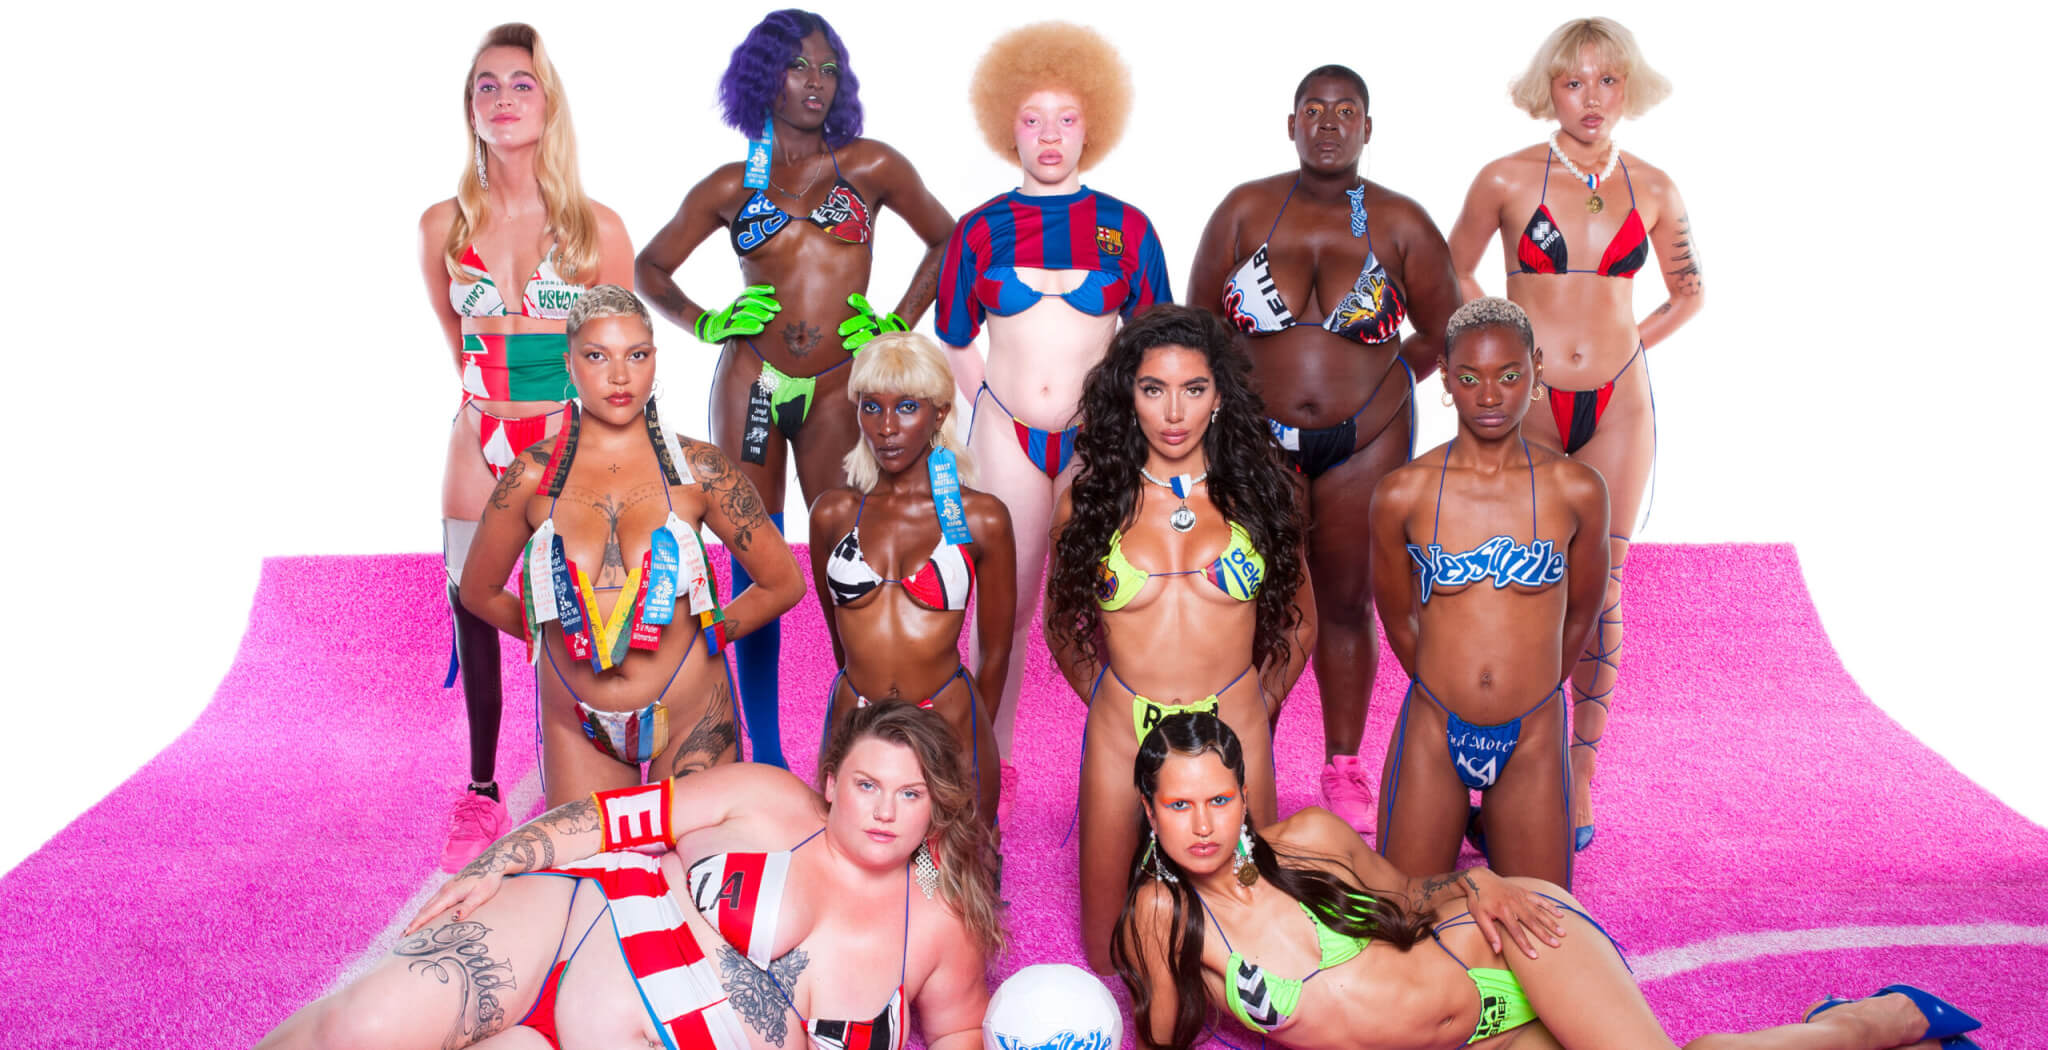 eleven women, wearing bikinis from Versatile Forever, are posing for a group foto on a pink soccerfield